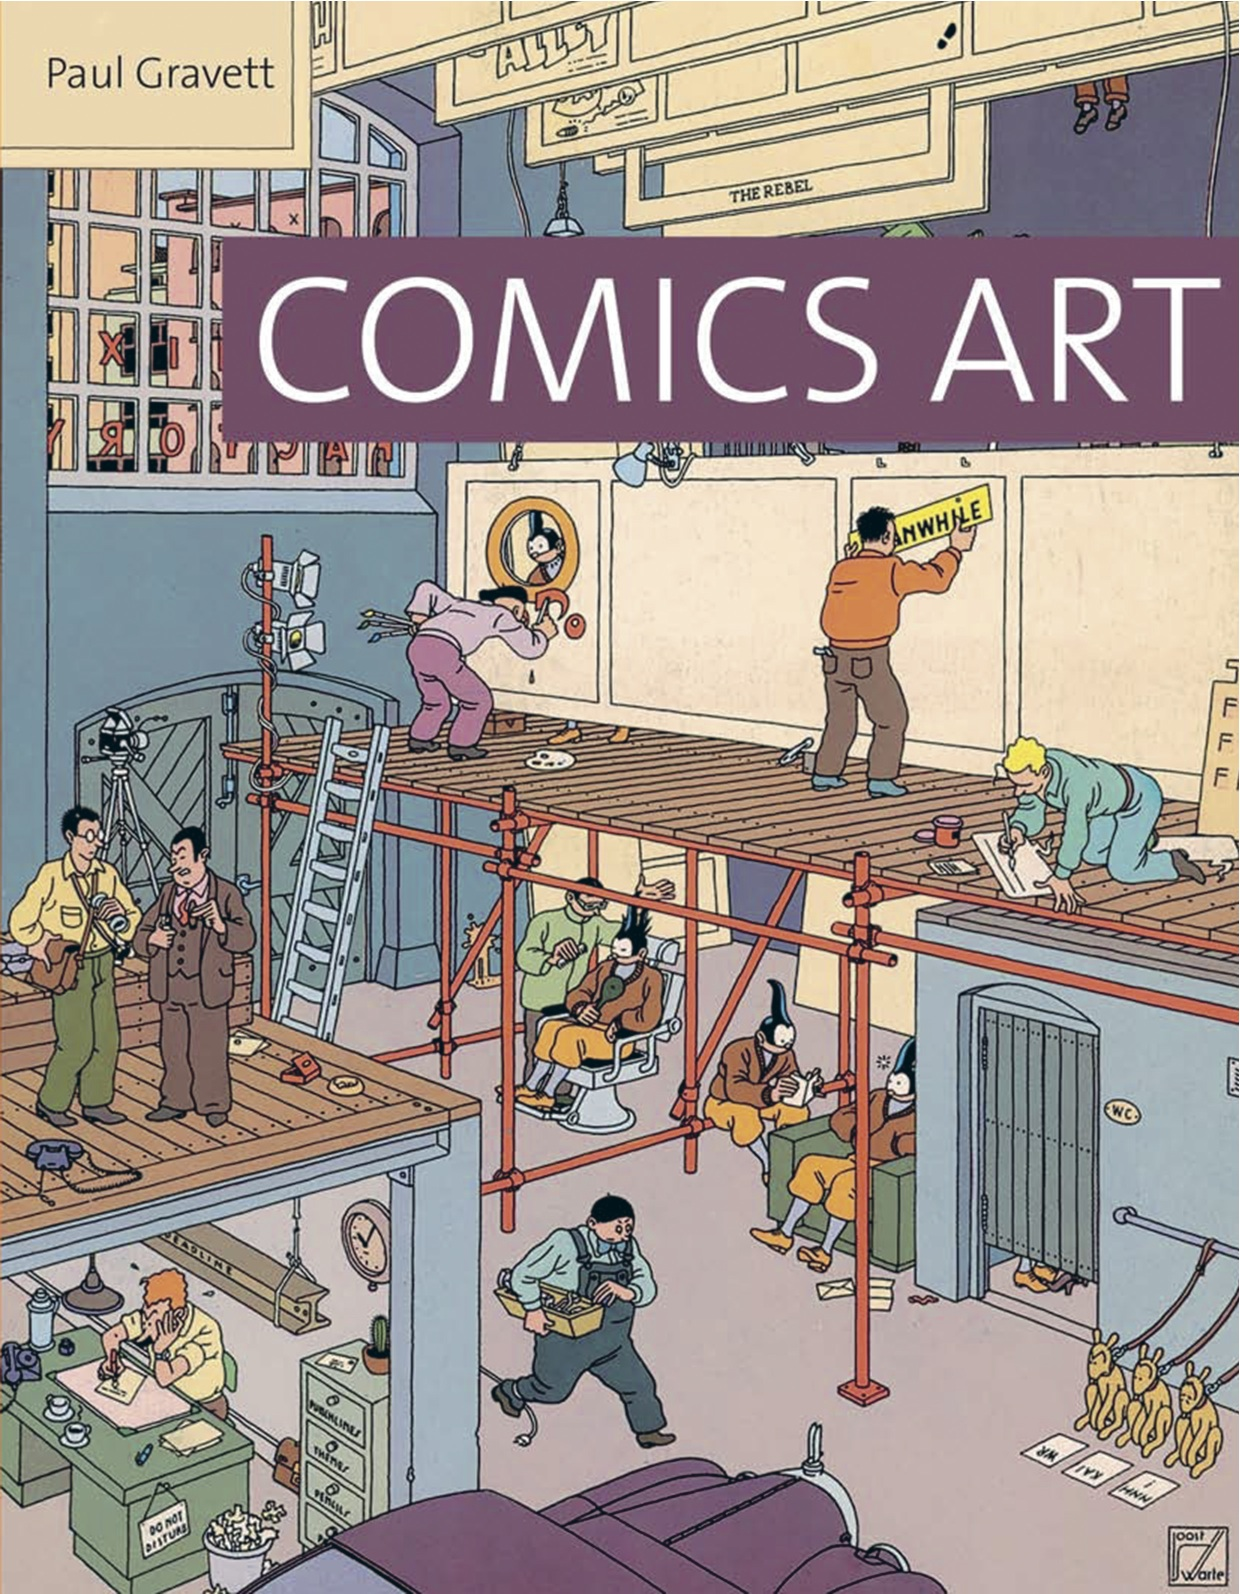 Comics Art by Paul Gravett